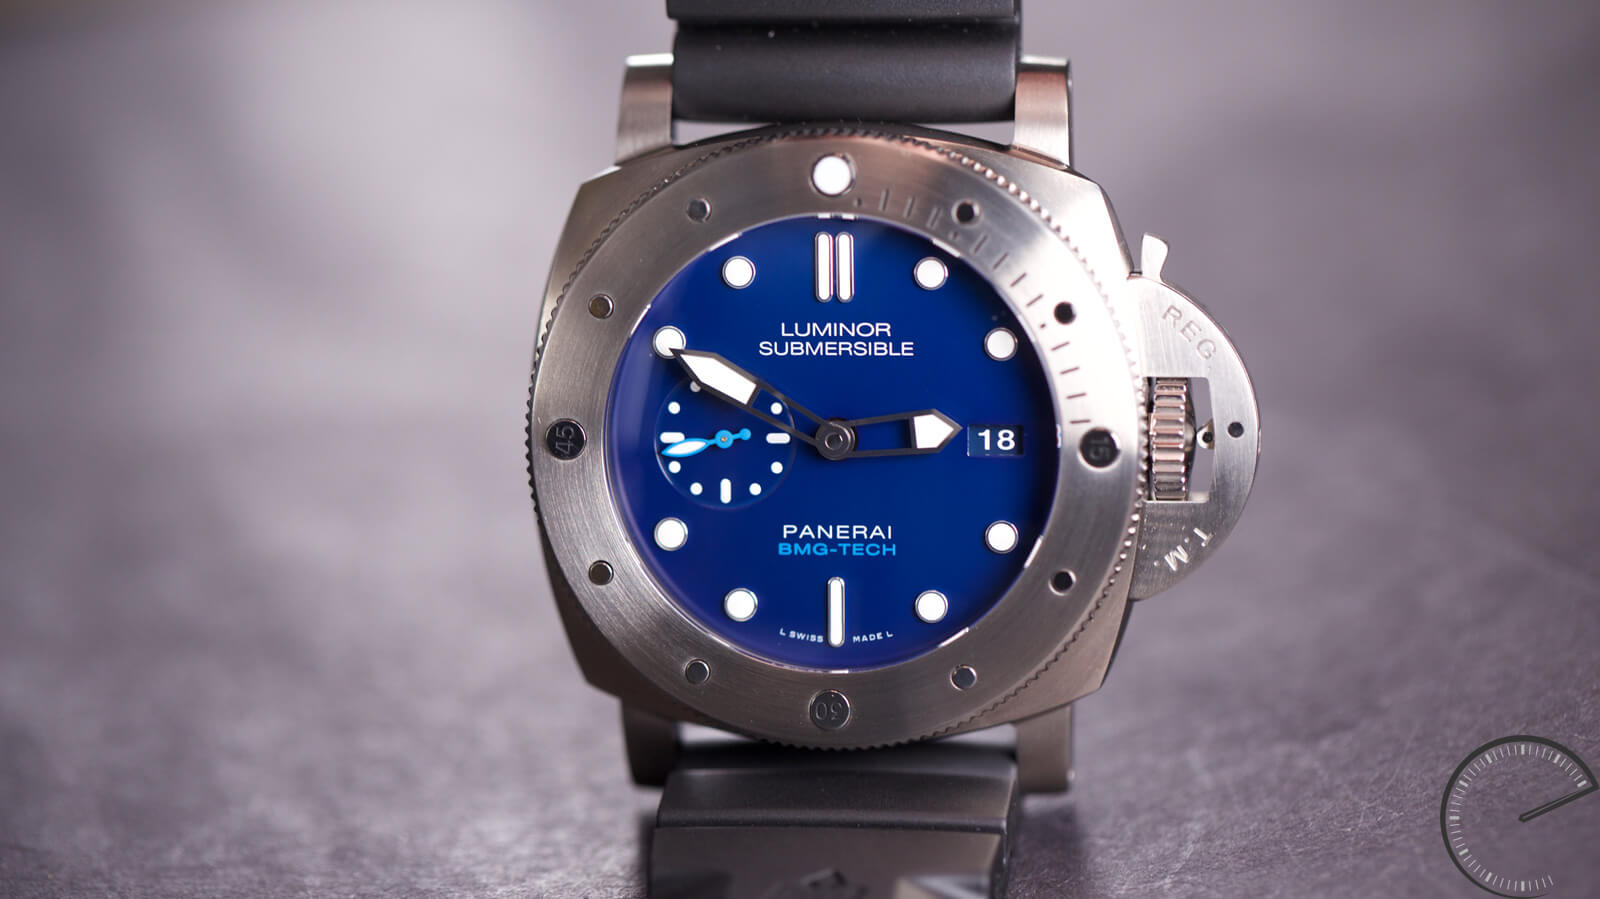 Panerai Luminor Submersible 1950 BMG-Tech 3 Days Automatic - PAM000692